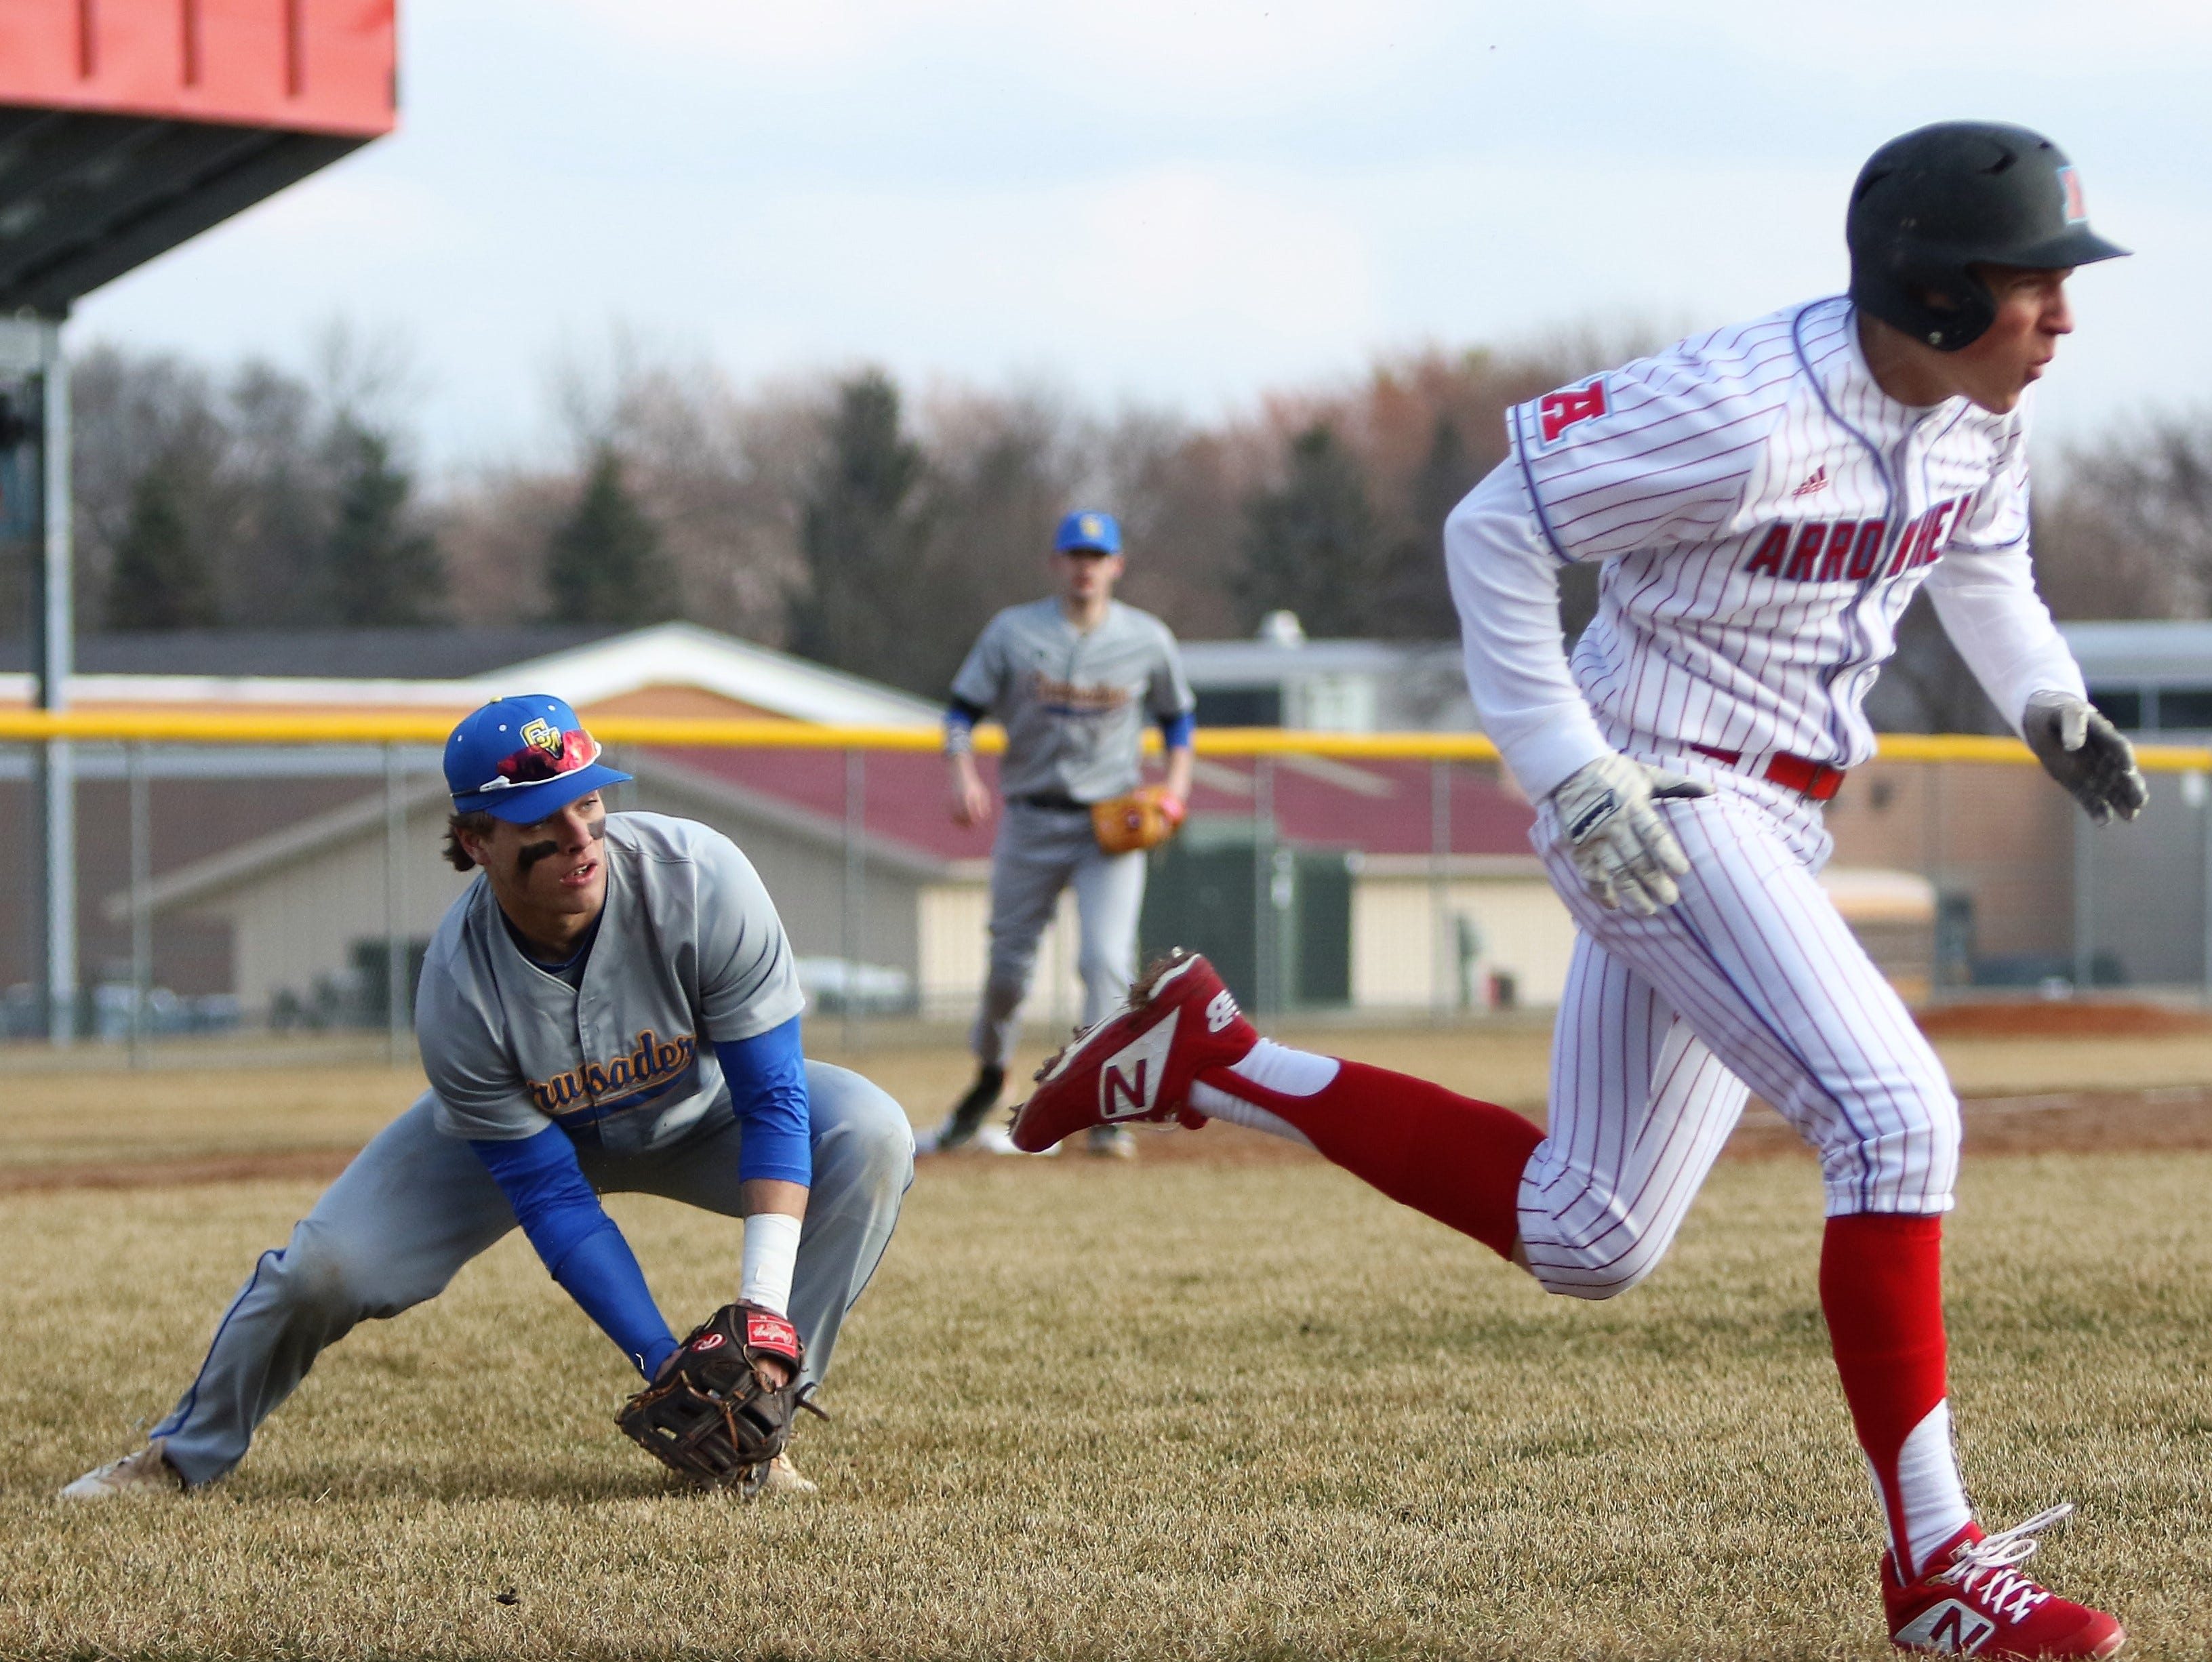 Catholic Memorial first baseman Alex Cyskiewicz fields a bunt by Arrowhead's Tyler Loebel during a game on April 2, 2019.